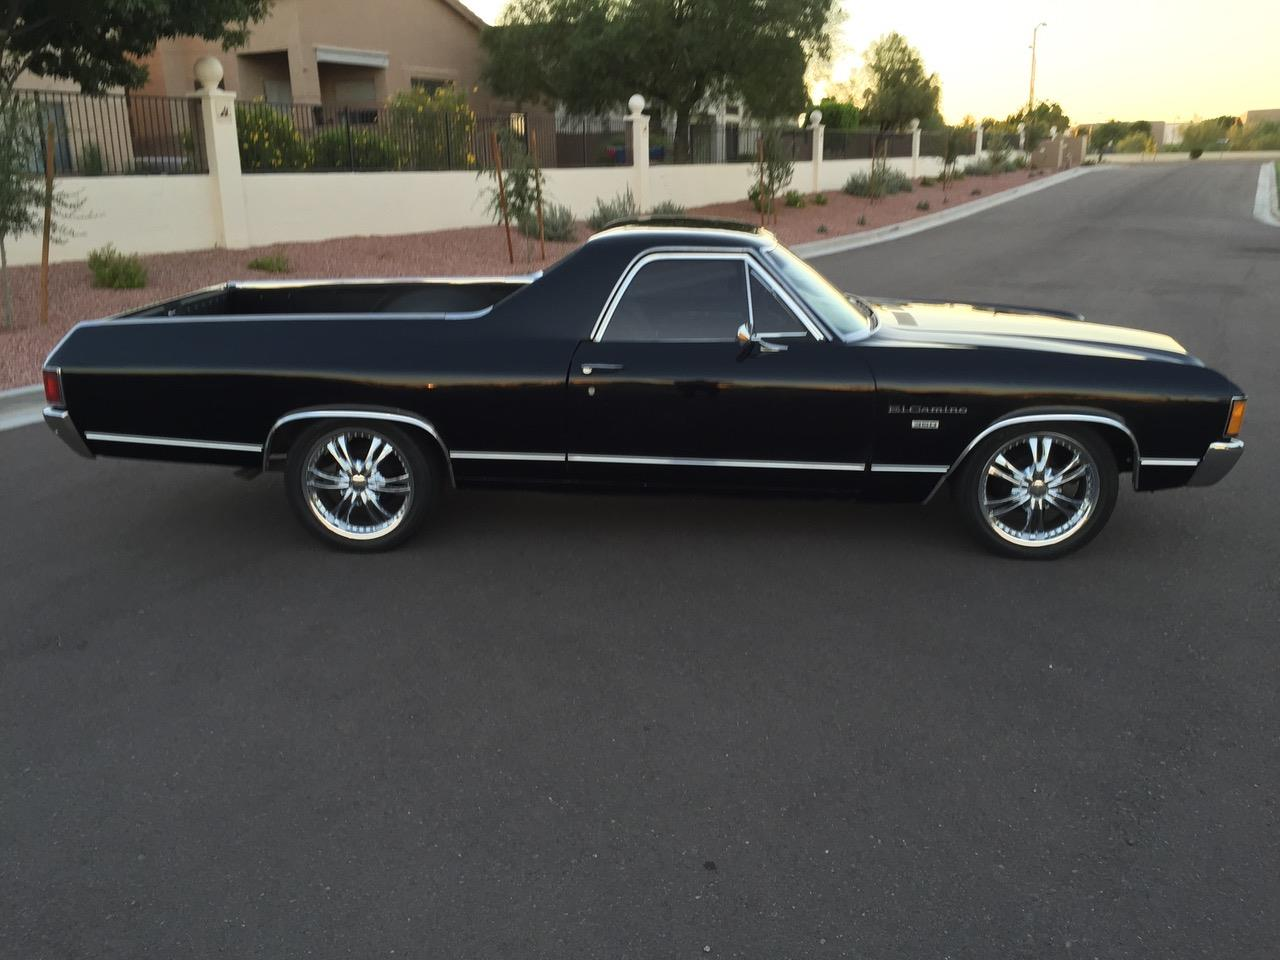 Large Picture of Classic 1972 El Camino - $15,000.00 Offered by Classic Car Pal - L5WP